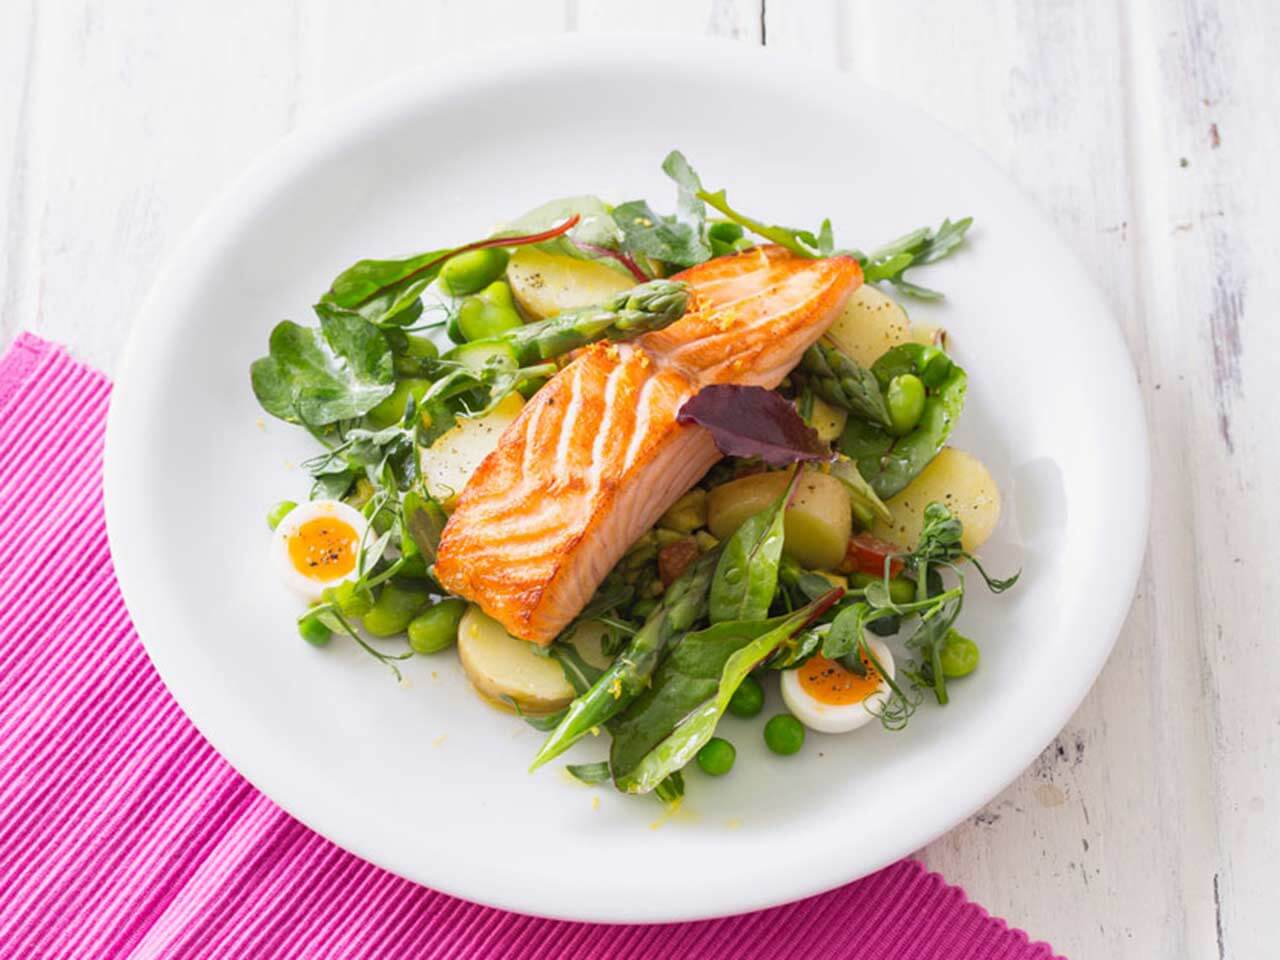 Slow baked salmon